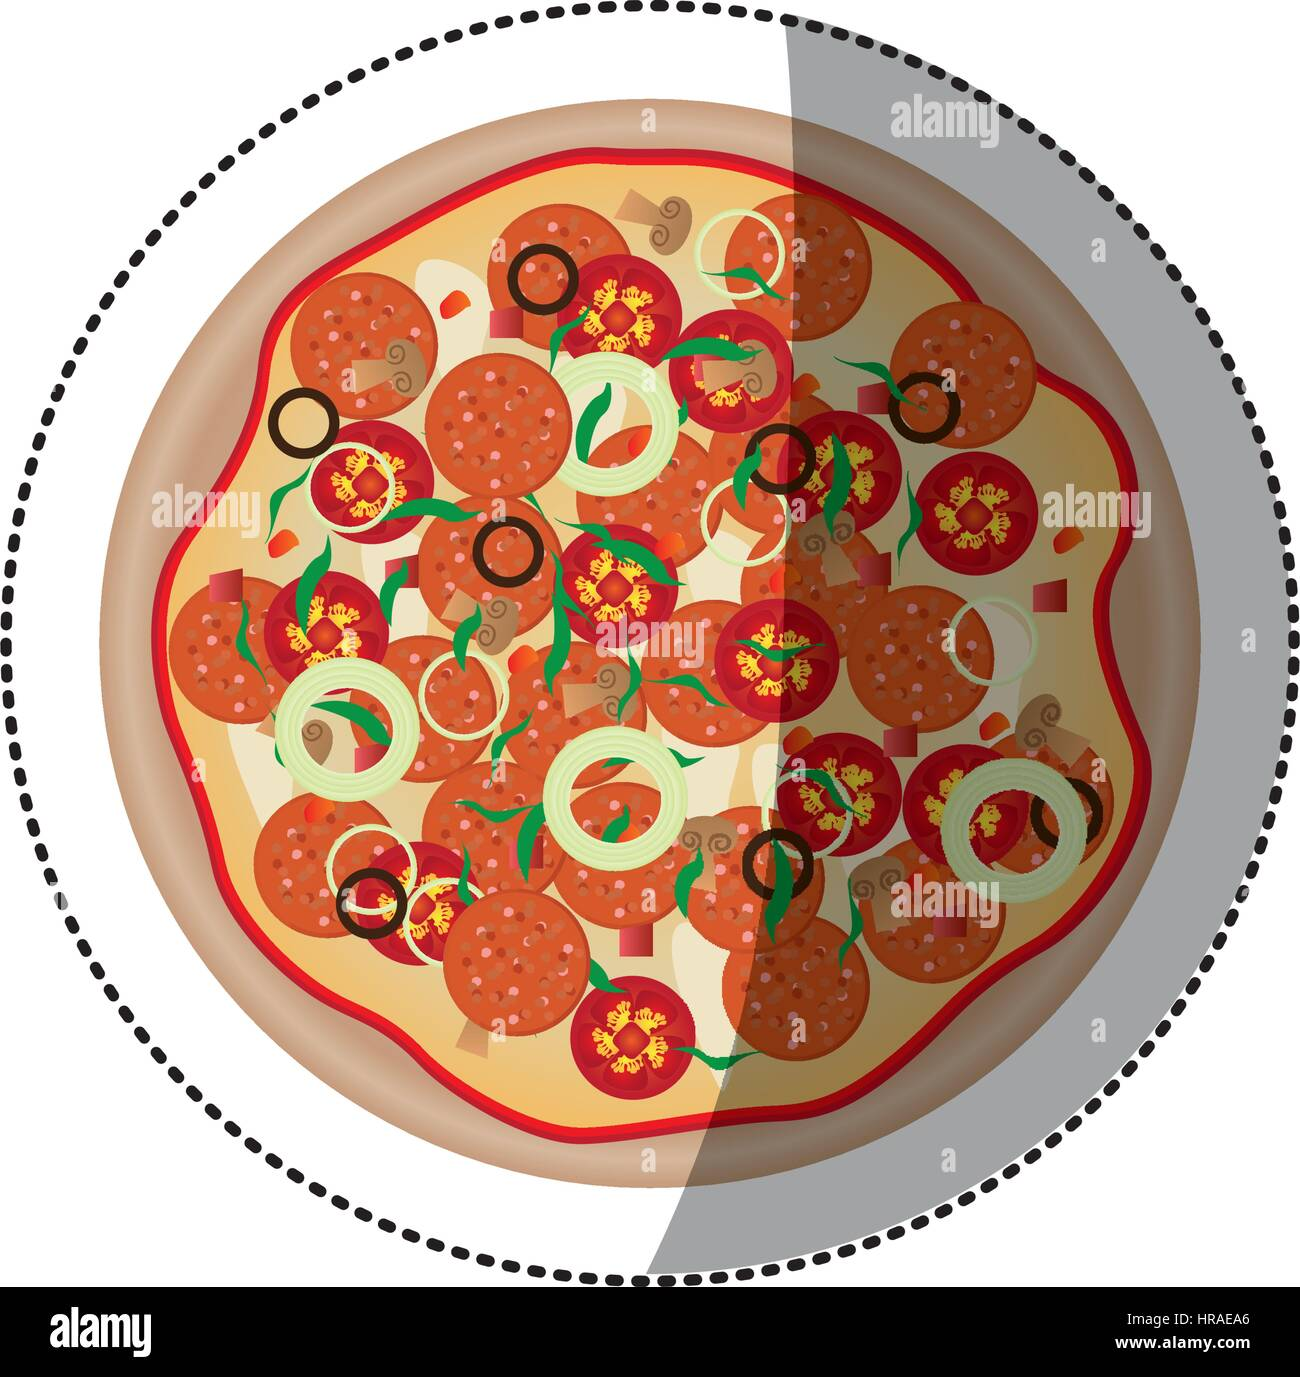 sticker colorful rounded pizza icon fast food - Stock Vector